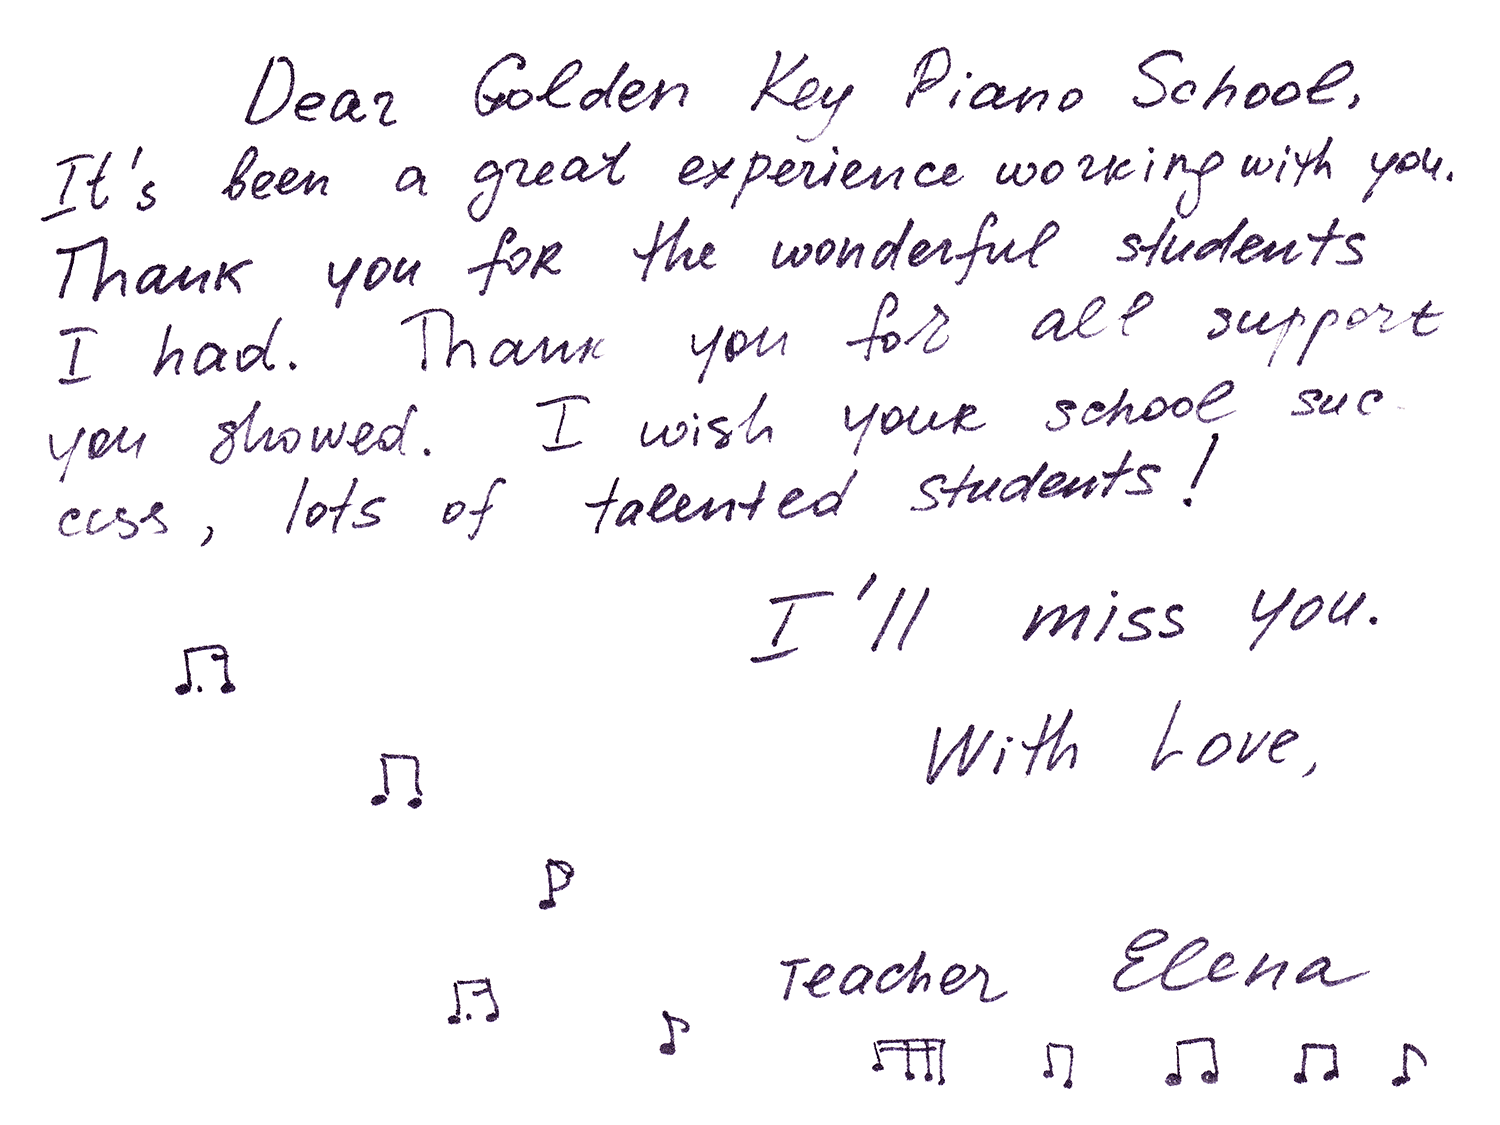 Dear Golden Key Piano School, It's been a great experience working with you. Thank you for the wonderful students I had. Thank you for all support you showerd. I wish your school success, lots of talented students! I'll miss you. With Love, Teacher Elena